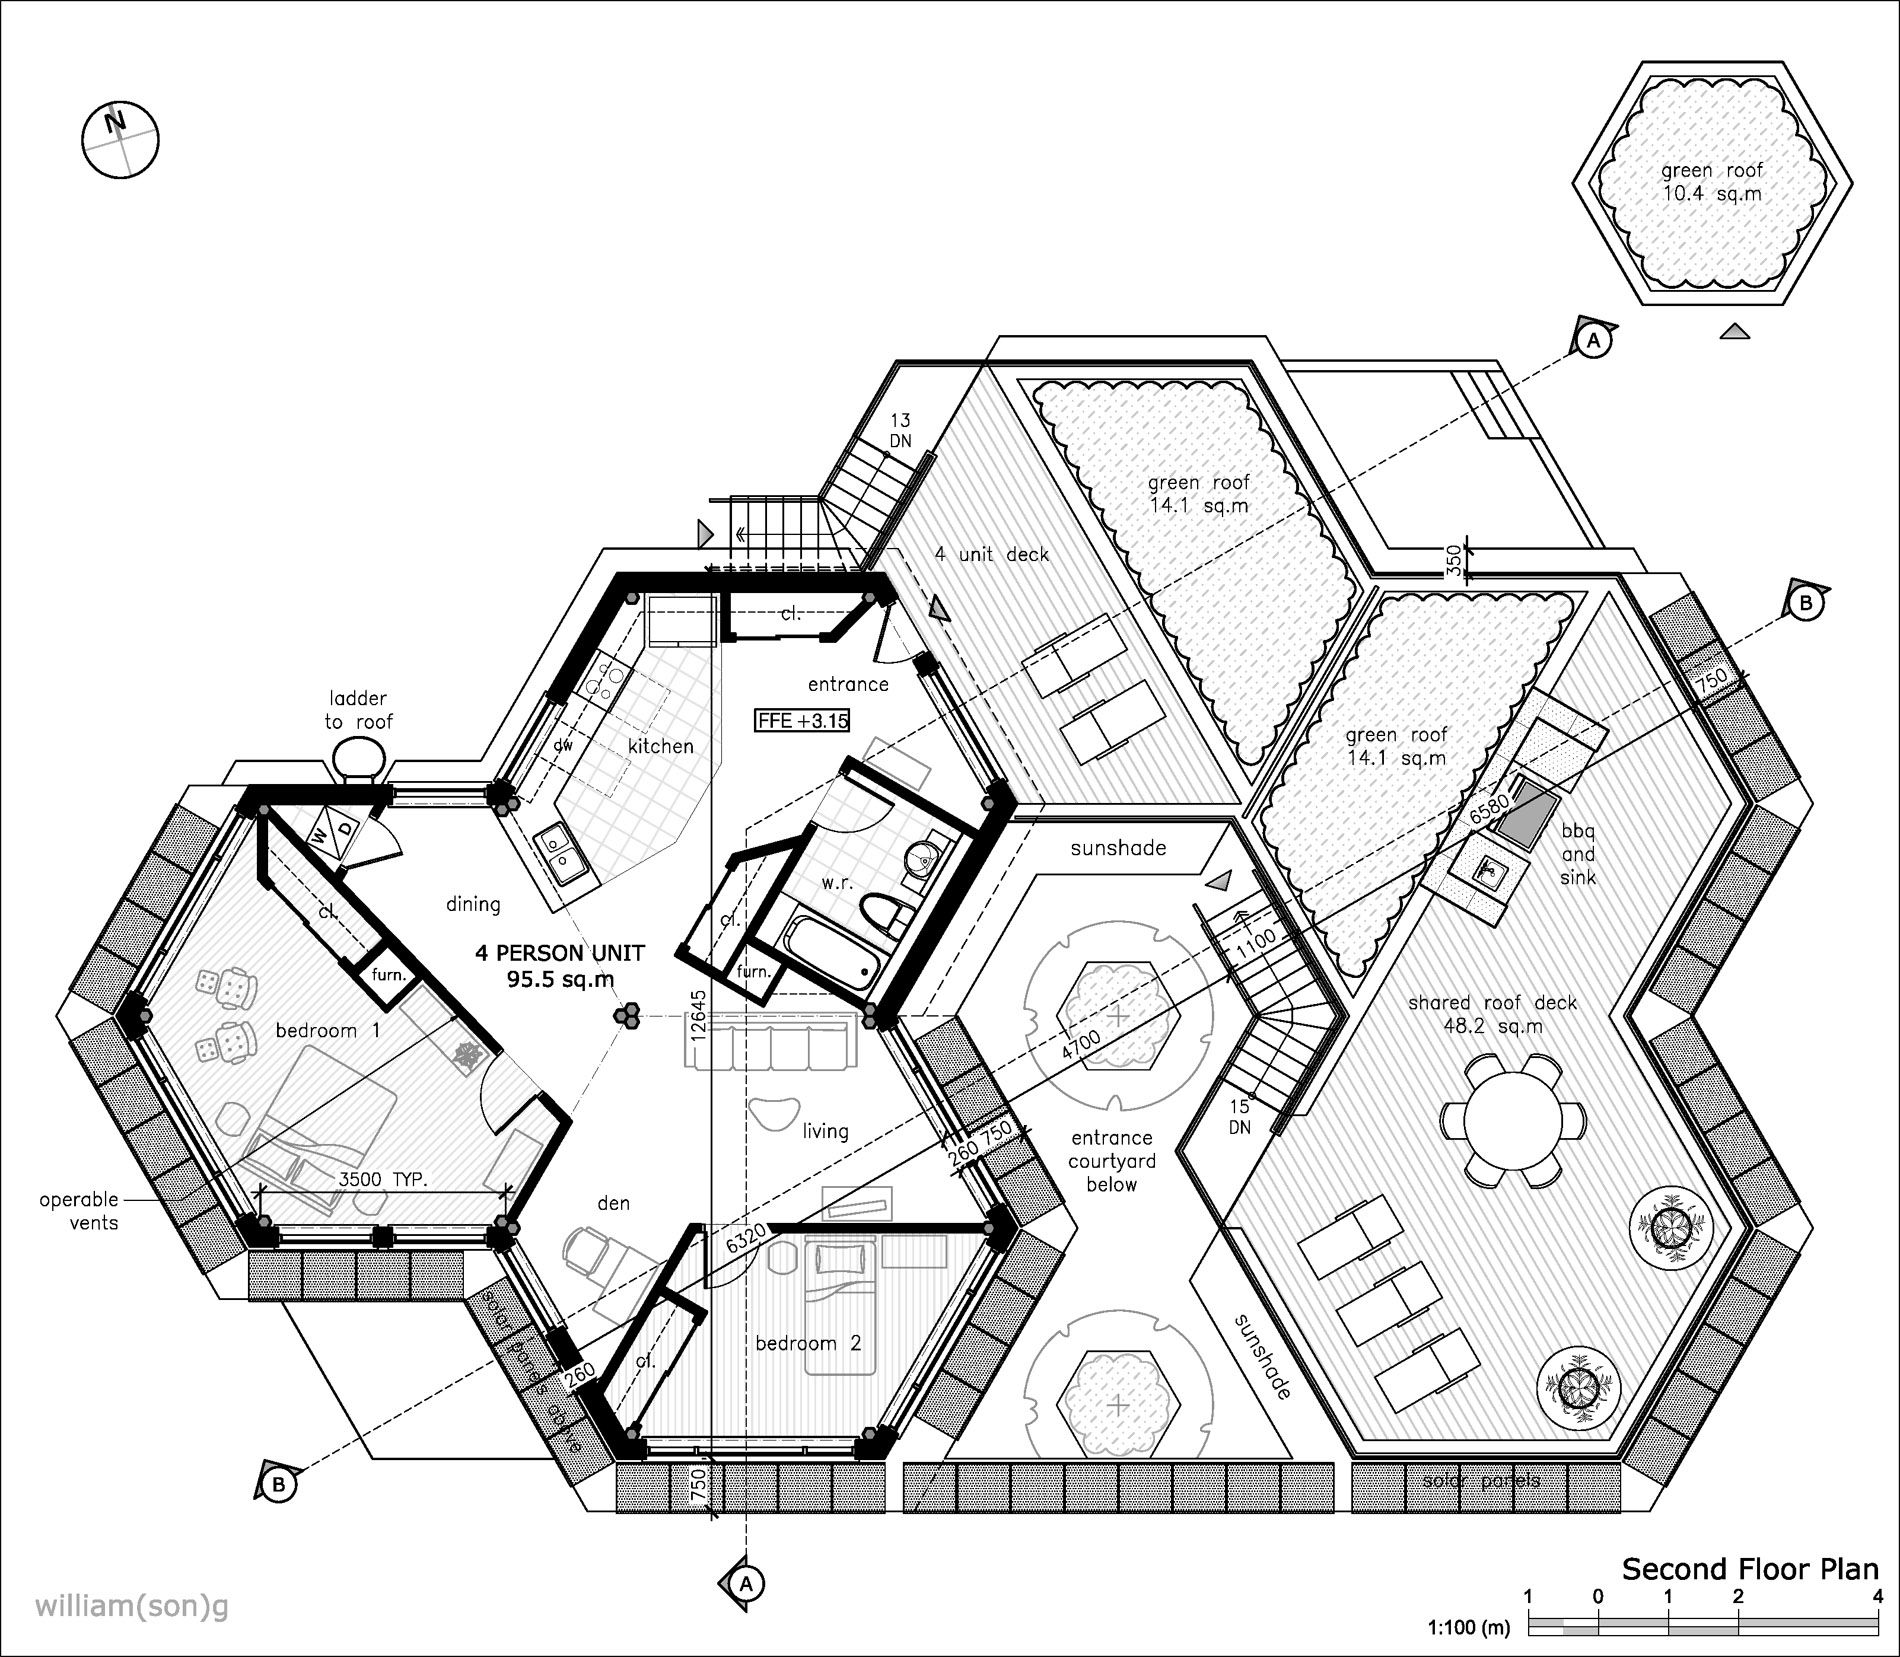 Hexagon house plans willian son g buscar con google for Plan de arquitectura